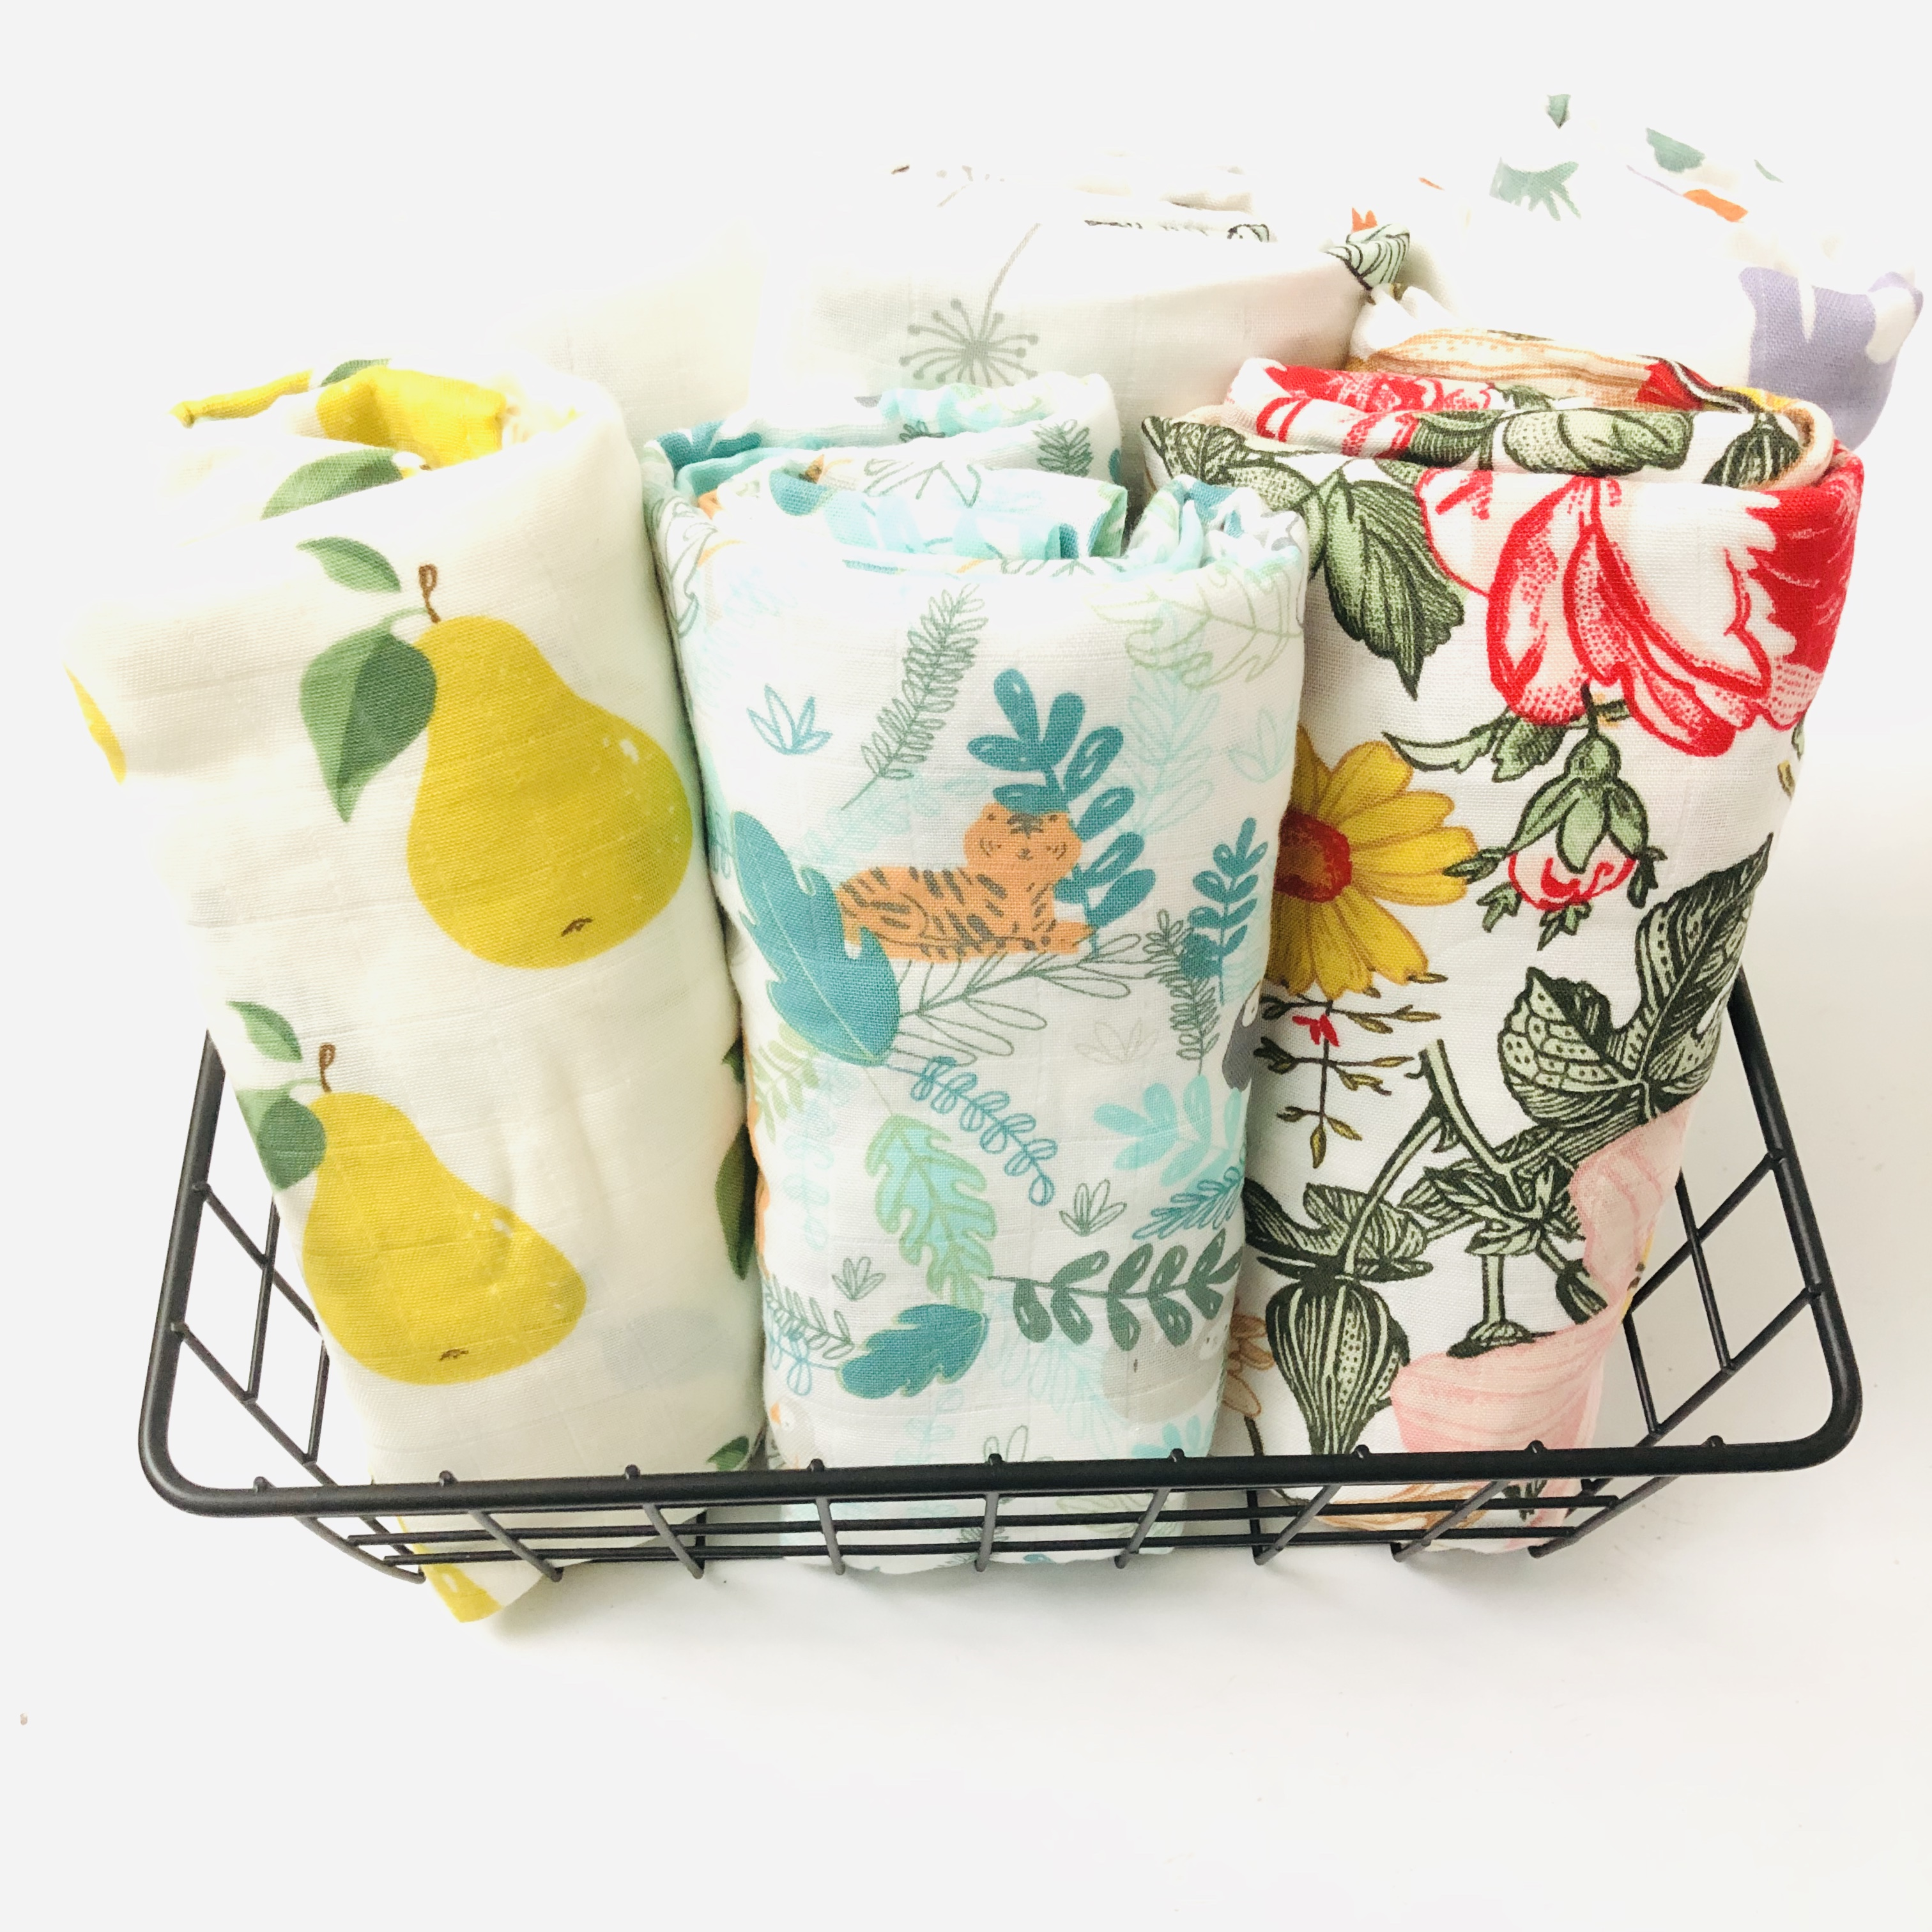 Lemon Baby Swaddle Baby Muslin Blankets Quality Better Than Aden Anais Baby Multi-use Cotton/bamboo Blanket Infant Wrap